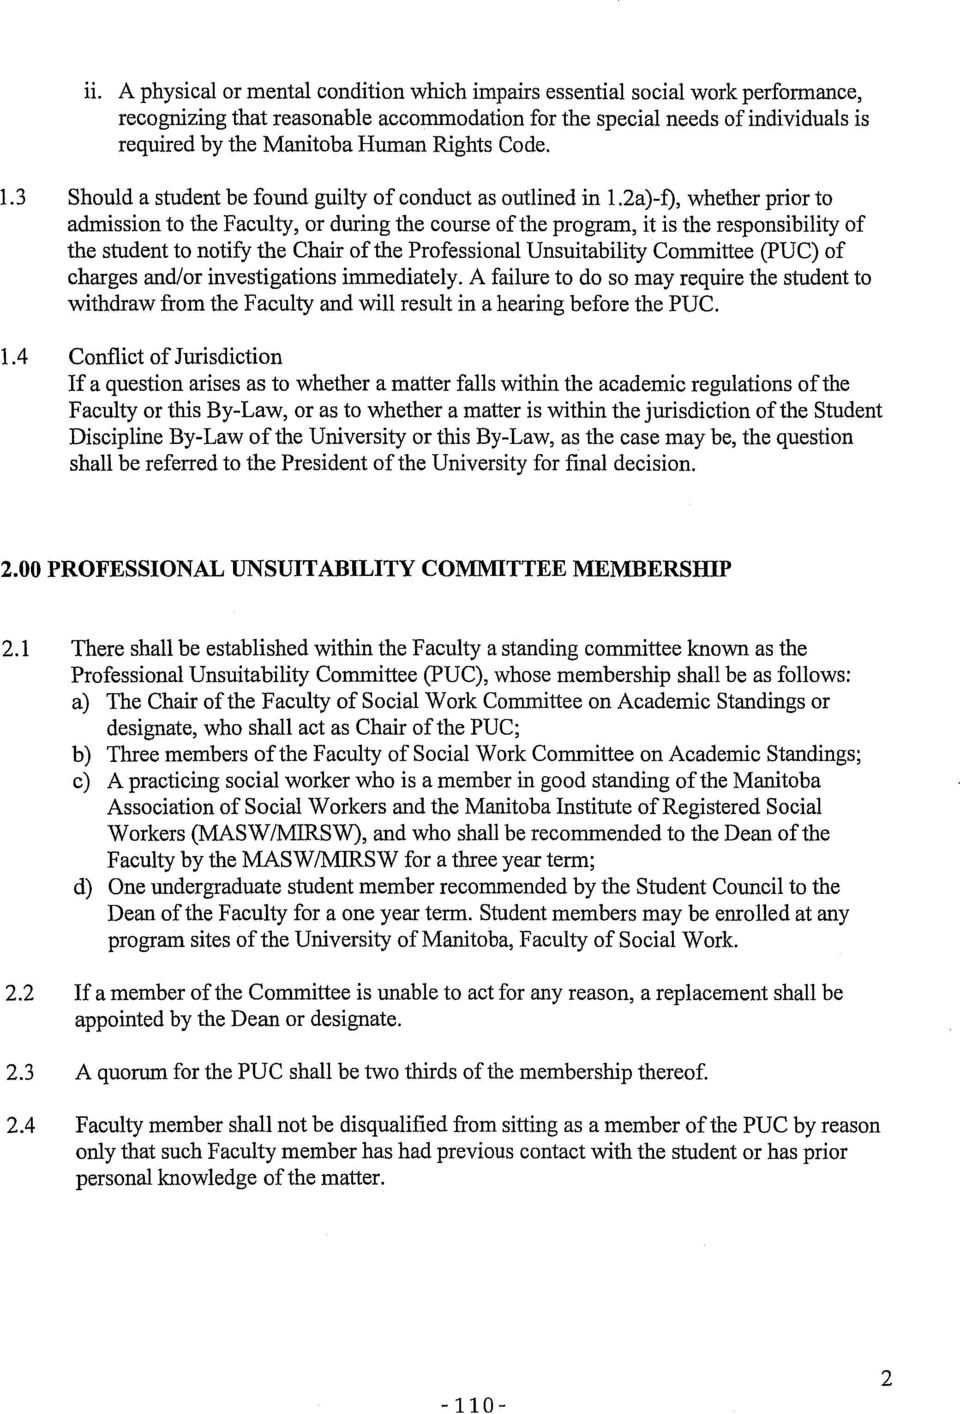 2a)-f), whether prior to admission to the Faculty, or during the course of the program, it is the responsibility of the student to notify the Chair of the Professional Unsuitability Committee (PUC)